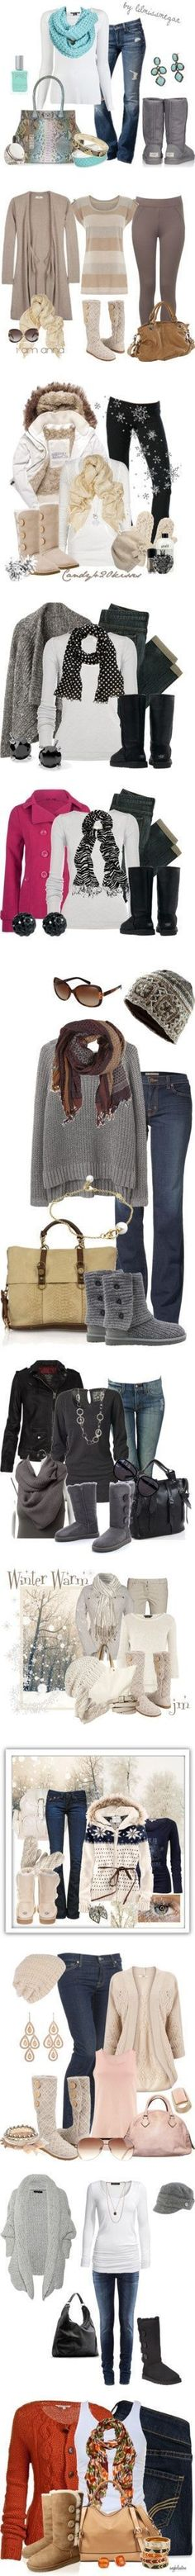 It's the first day of winter and what could be a better way to beat the cold temperatures than a cozy pair of  everyone's love at winter! ugg boots outlet!? Available in a wide range of colors and styles, there is sure to be a boot for everyone's fashion need! Boots by ugg,ugg online store ——The best Christmas gift